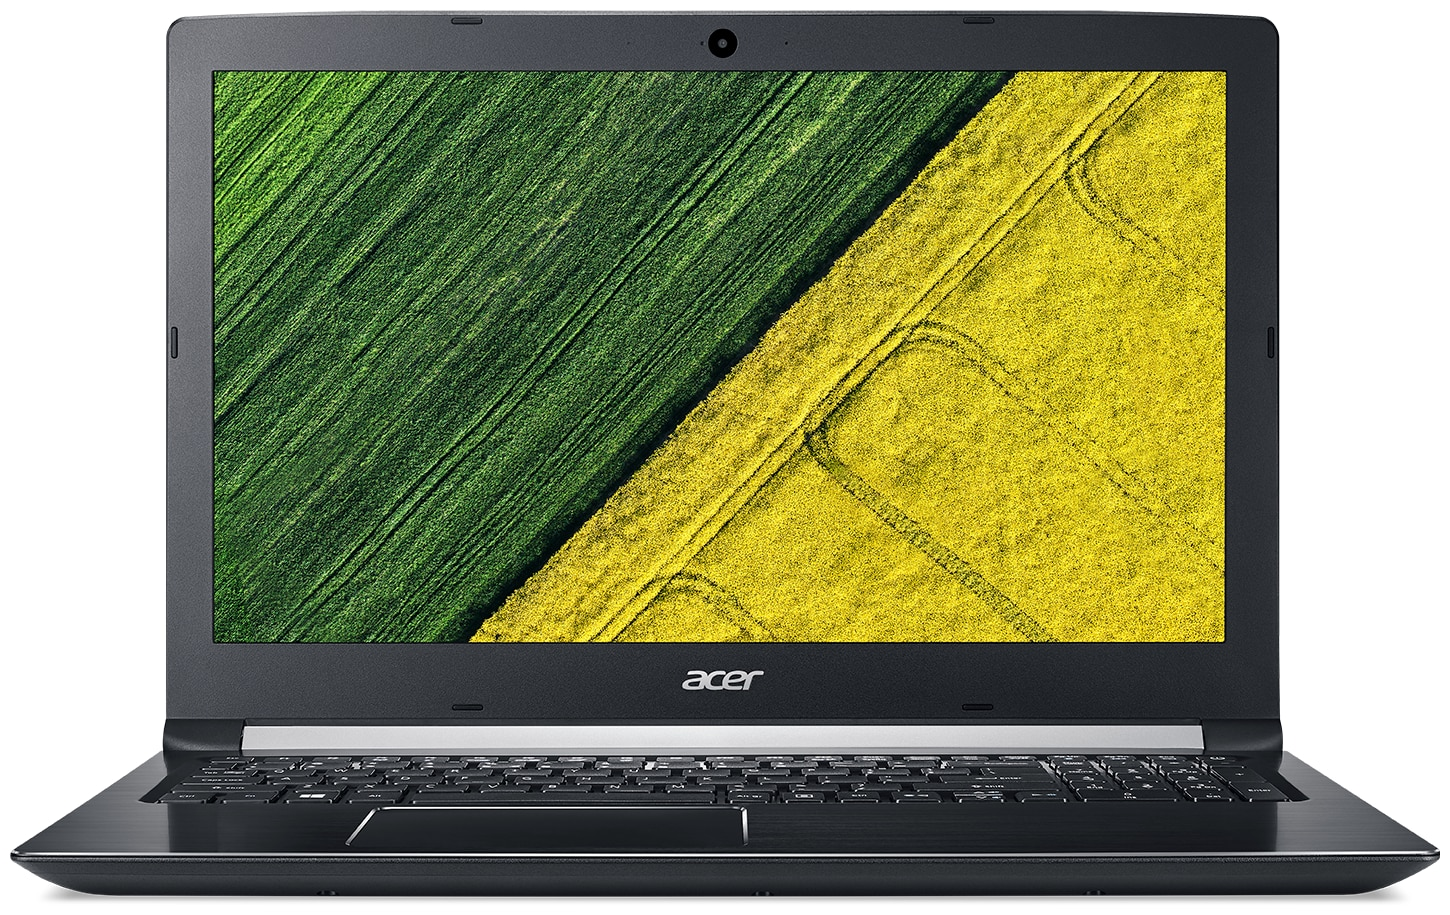 Acer Aspire 5 (Core i5 - 7th Gen / 8 GB / 1 TB / 39.62 cm (15.6 Inch) / Linux / 2 GB Graphics) Aspire 5 A515-51G-50UW (NX.GVMSI.005) (Steel Grey, 2.2 kg)